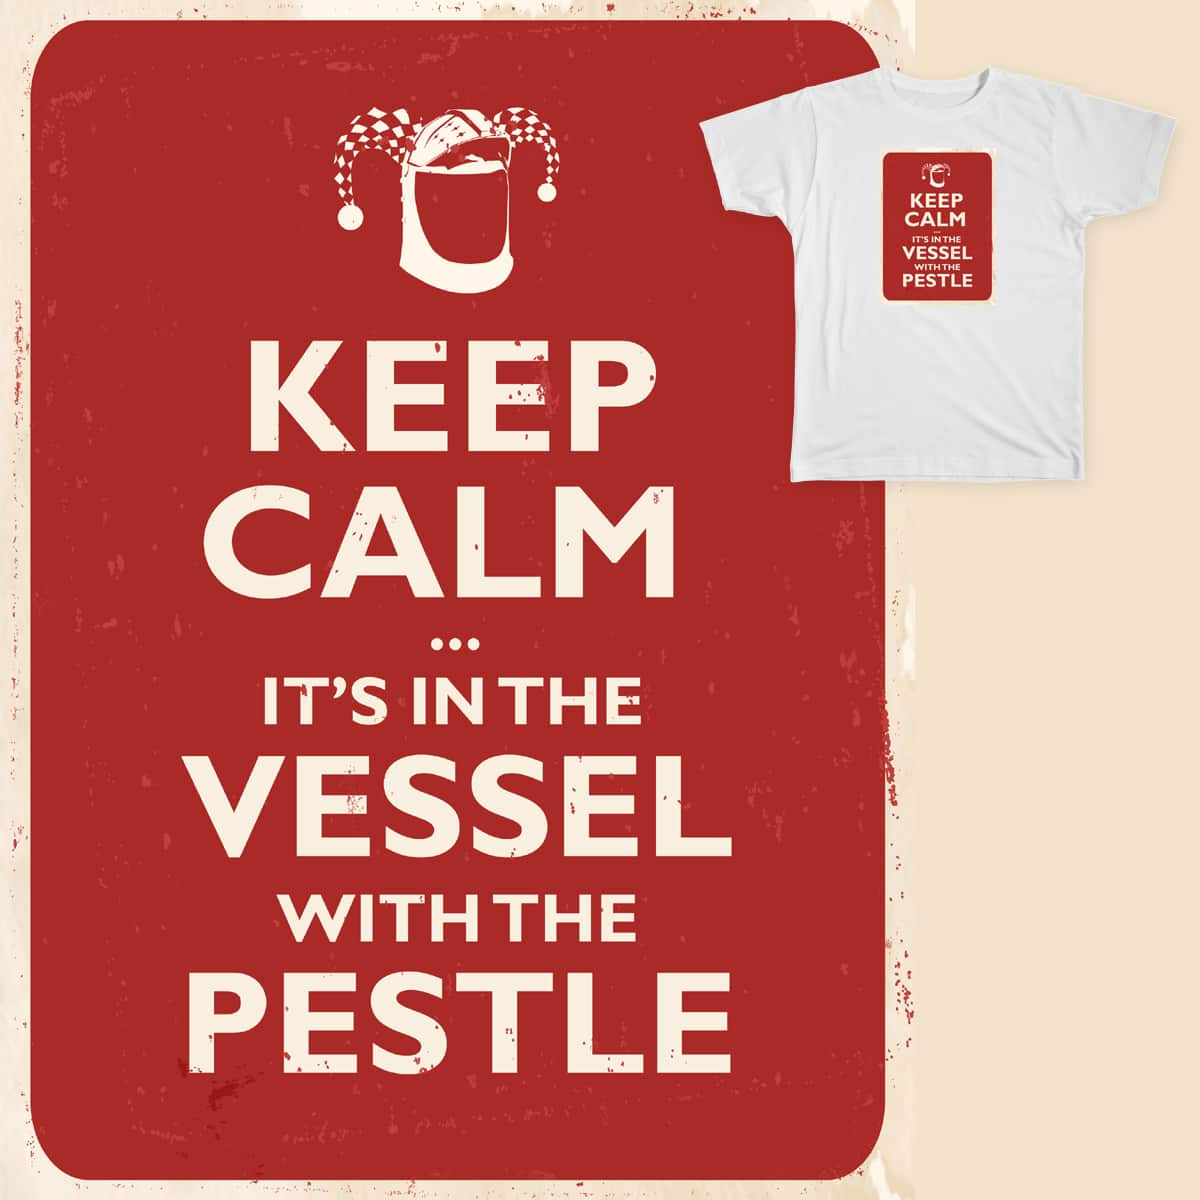 Keep Calm... it's in the Vessel with the Pestle by recordbaby on Threadless